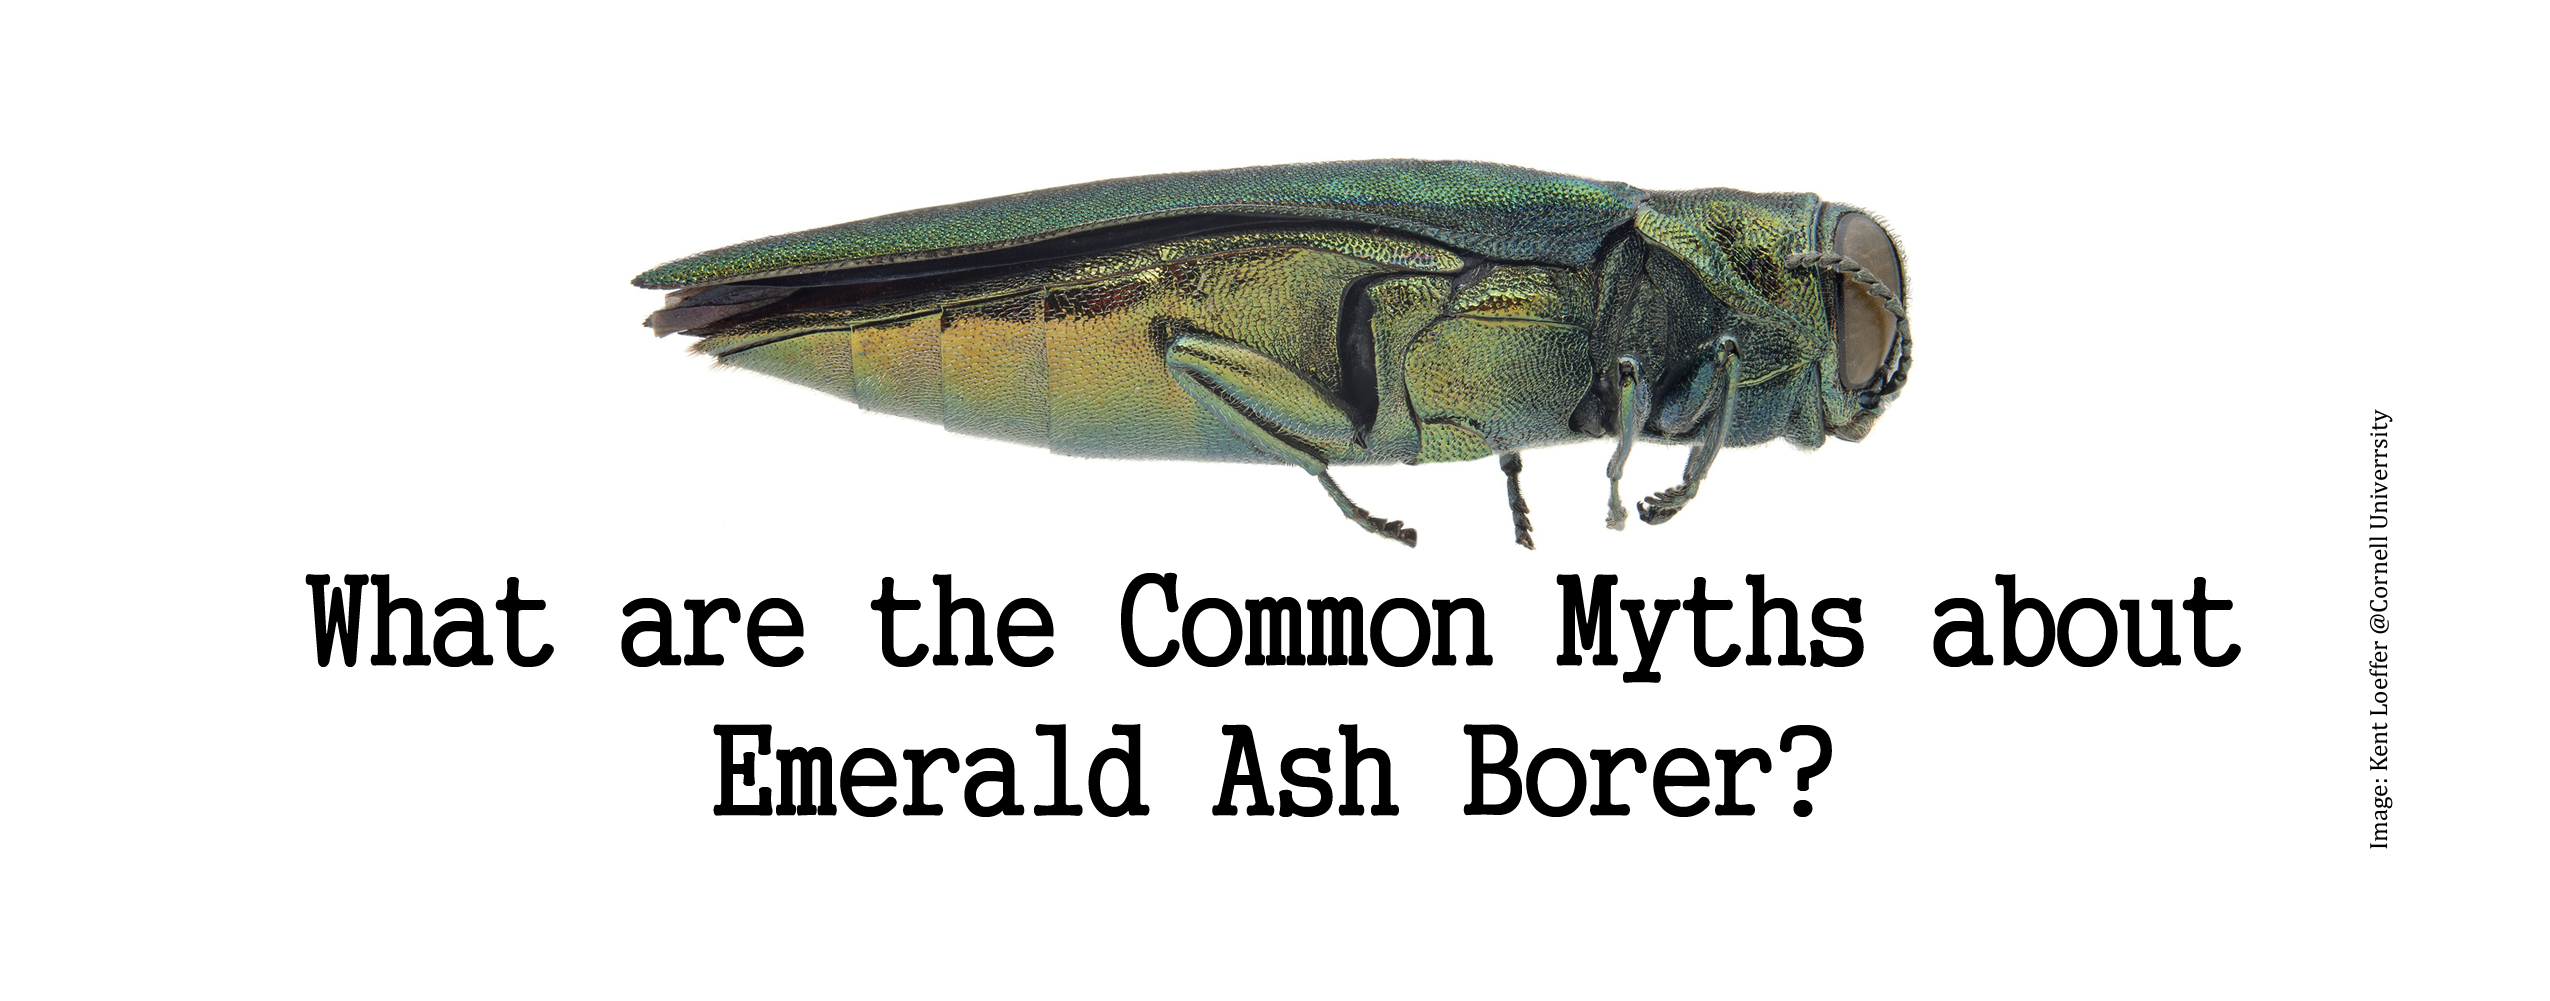 what are the common myths about emerald ash borer